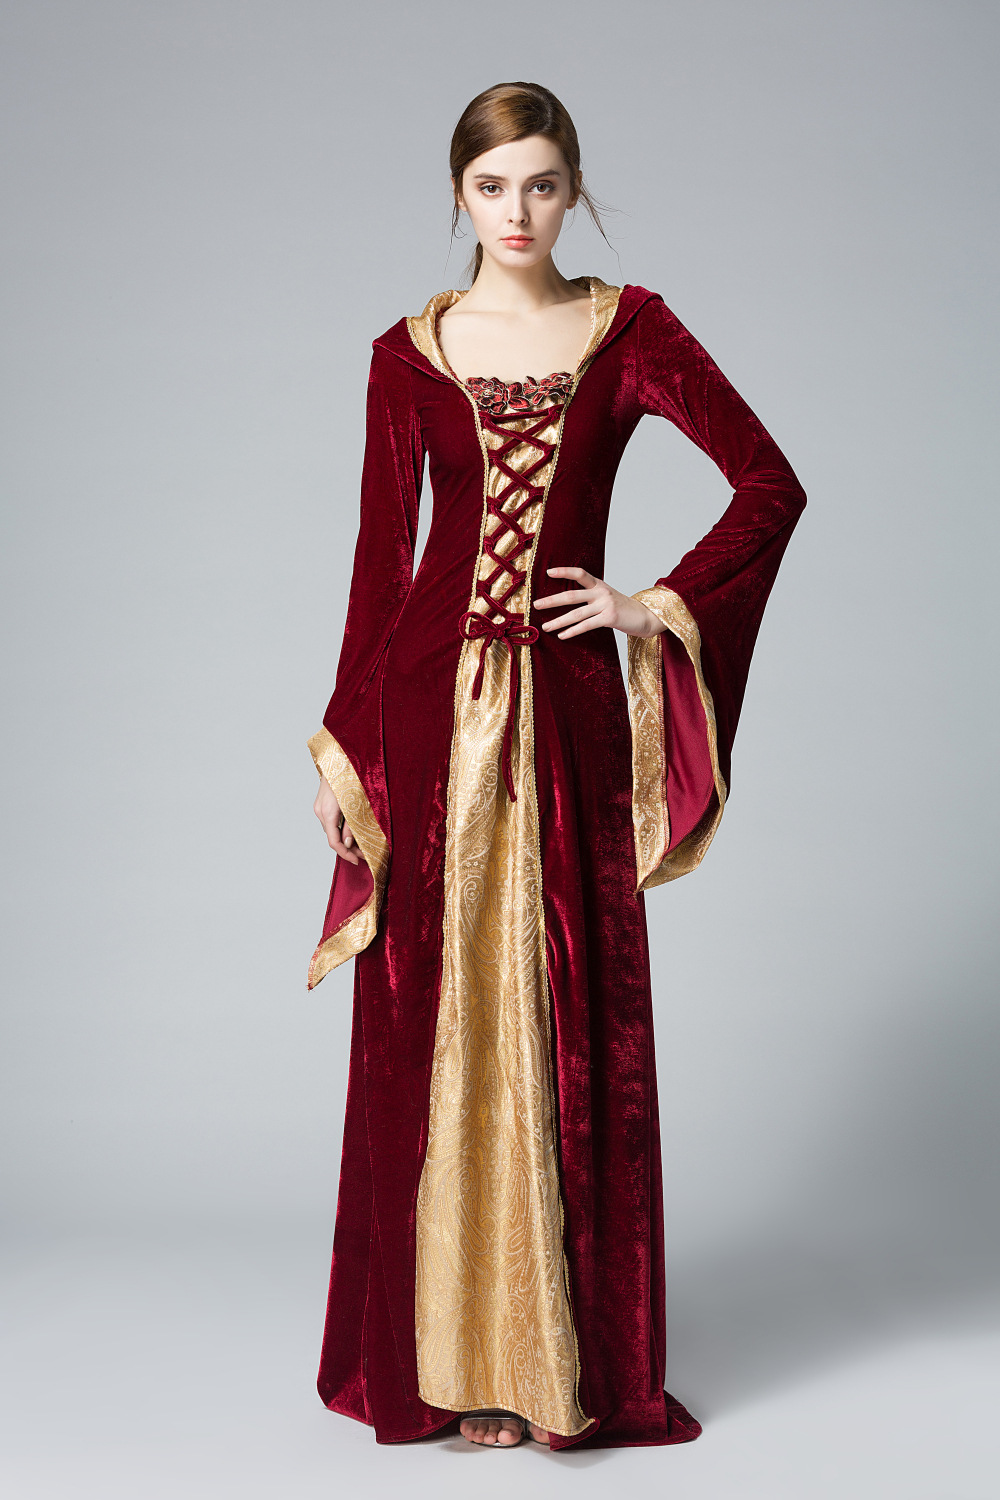 Halloween Party Cosplay adult medieval dress Medieval queen Costumes For Women Full Sleeve Jacquard Gown Princess Costume gown